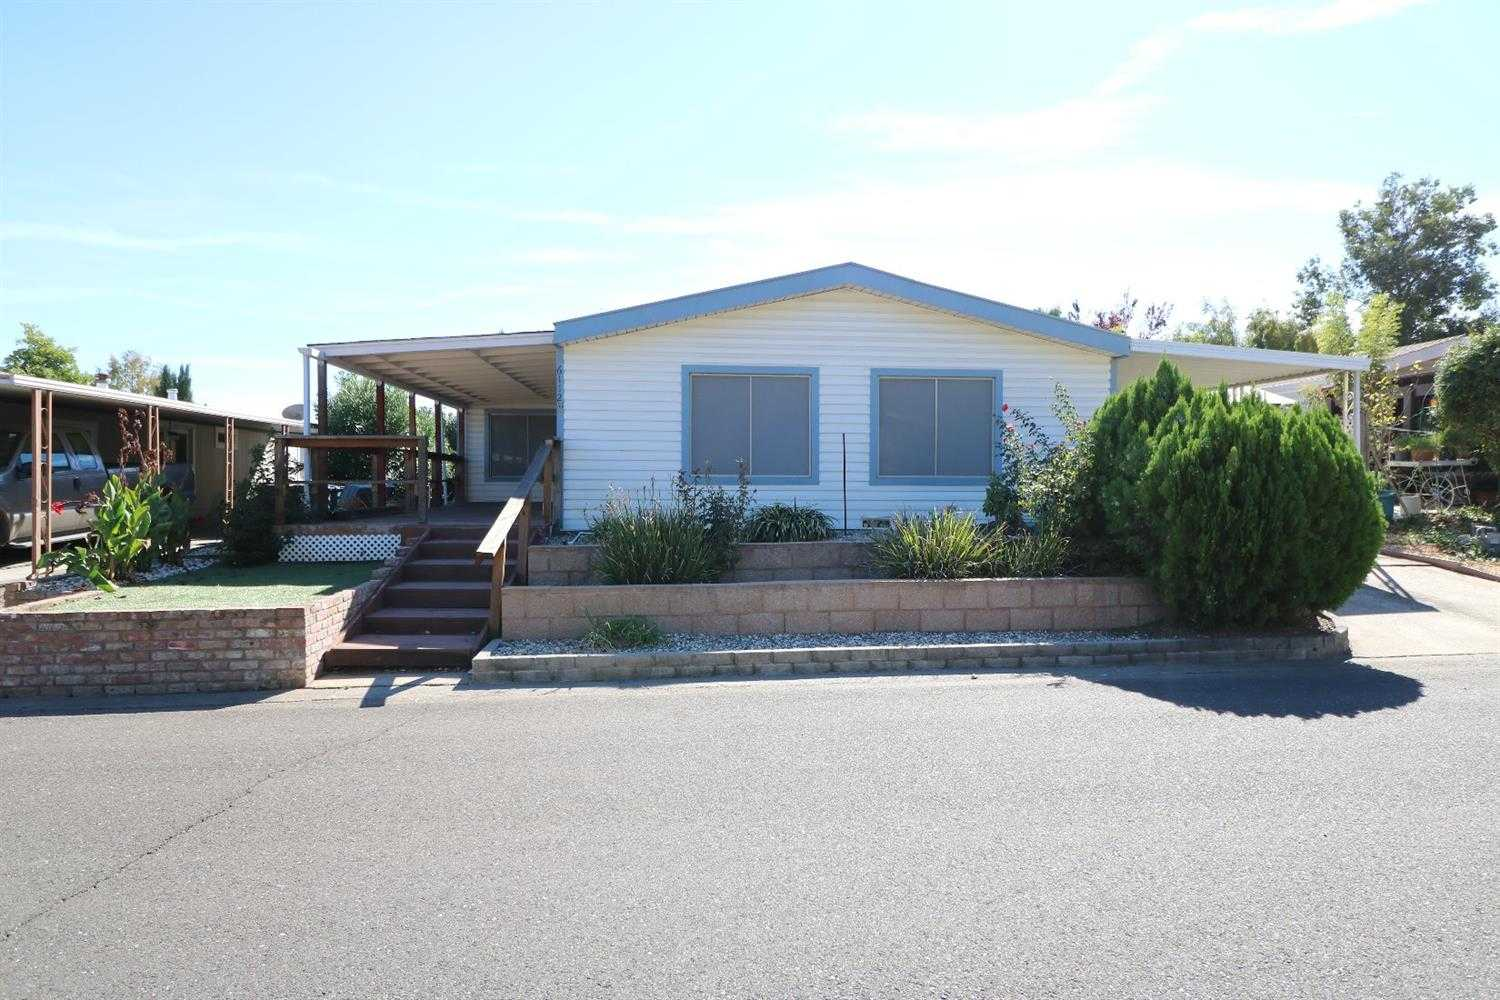 $135,000 - 2Br/2Ba -  for Sale in Citrus Heights